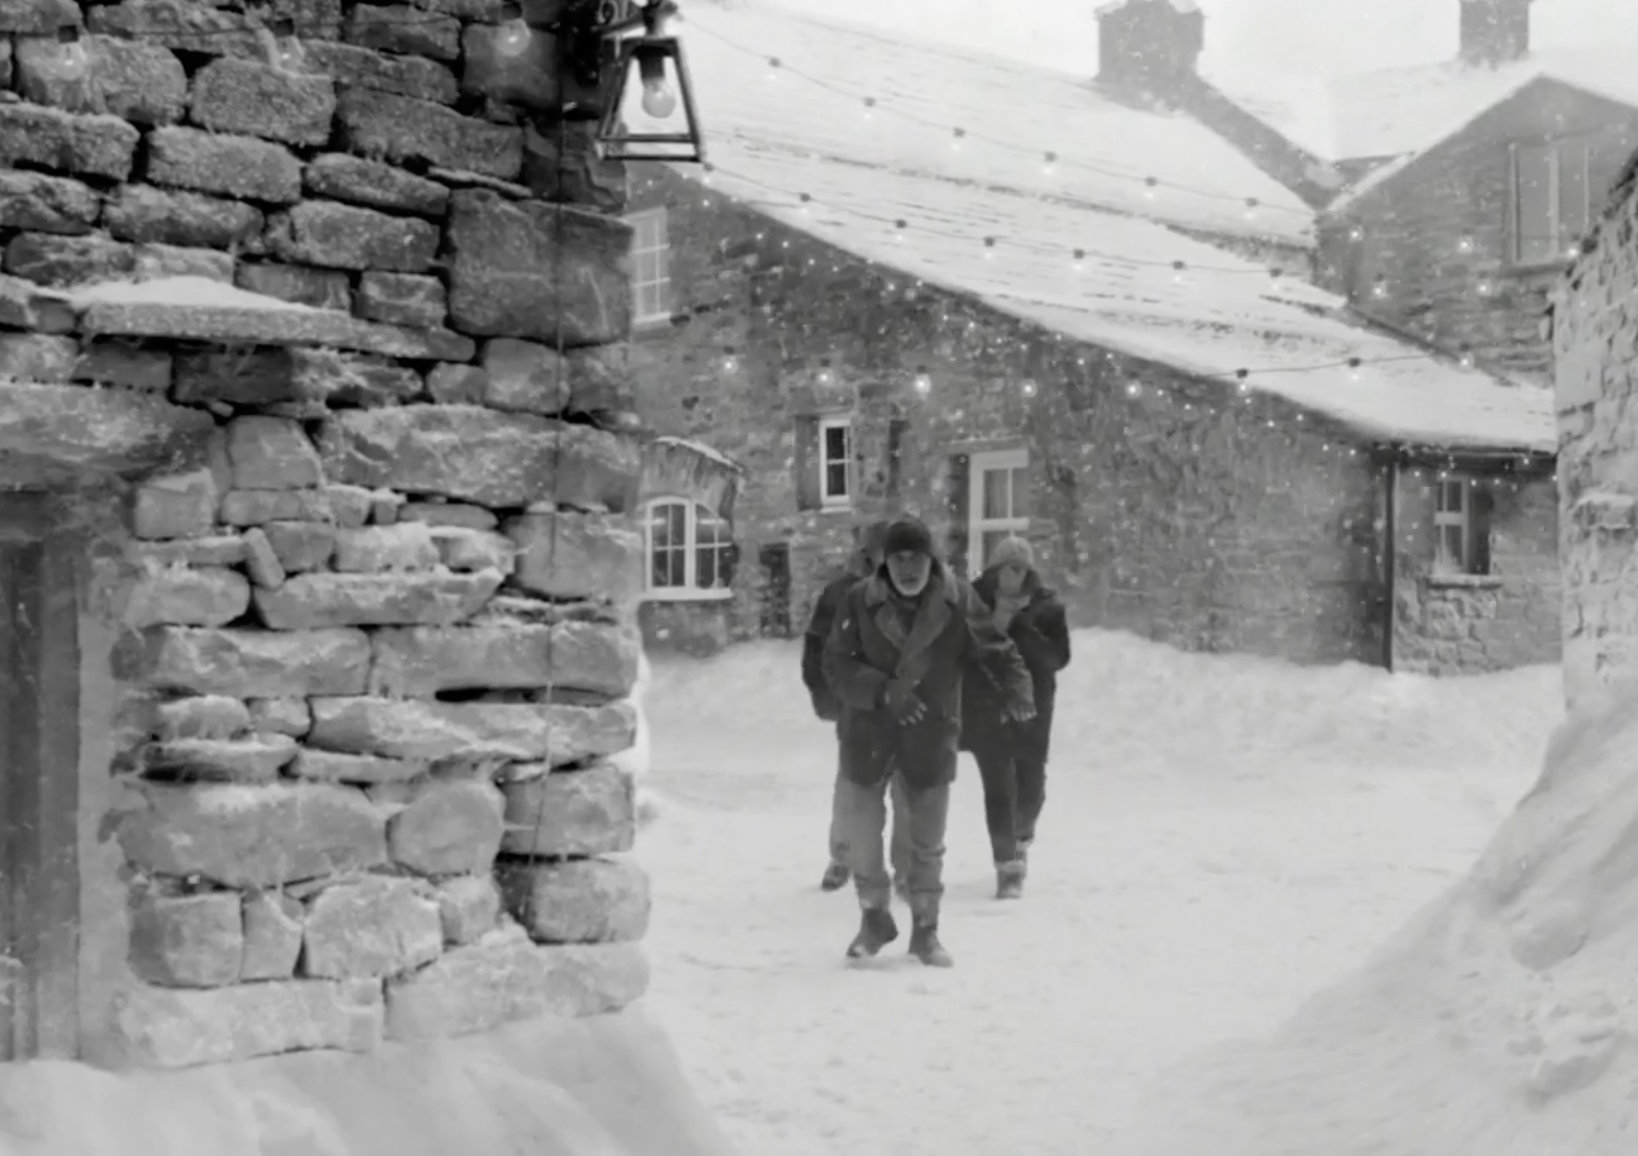 Waitrose (Snowed In) Dir Martin de Thurah